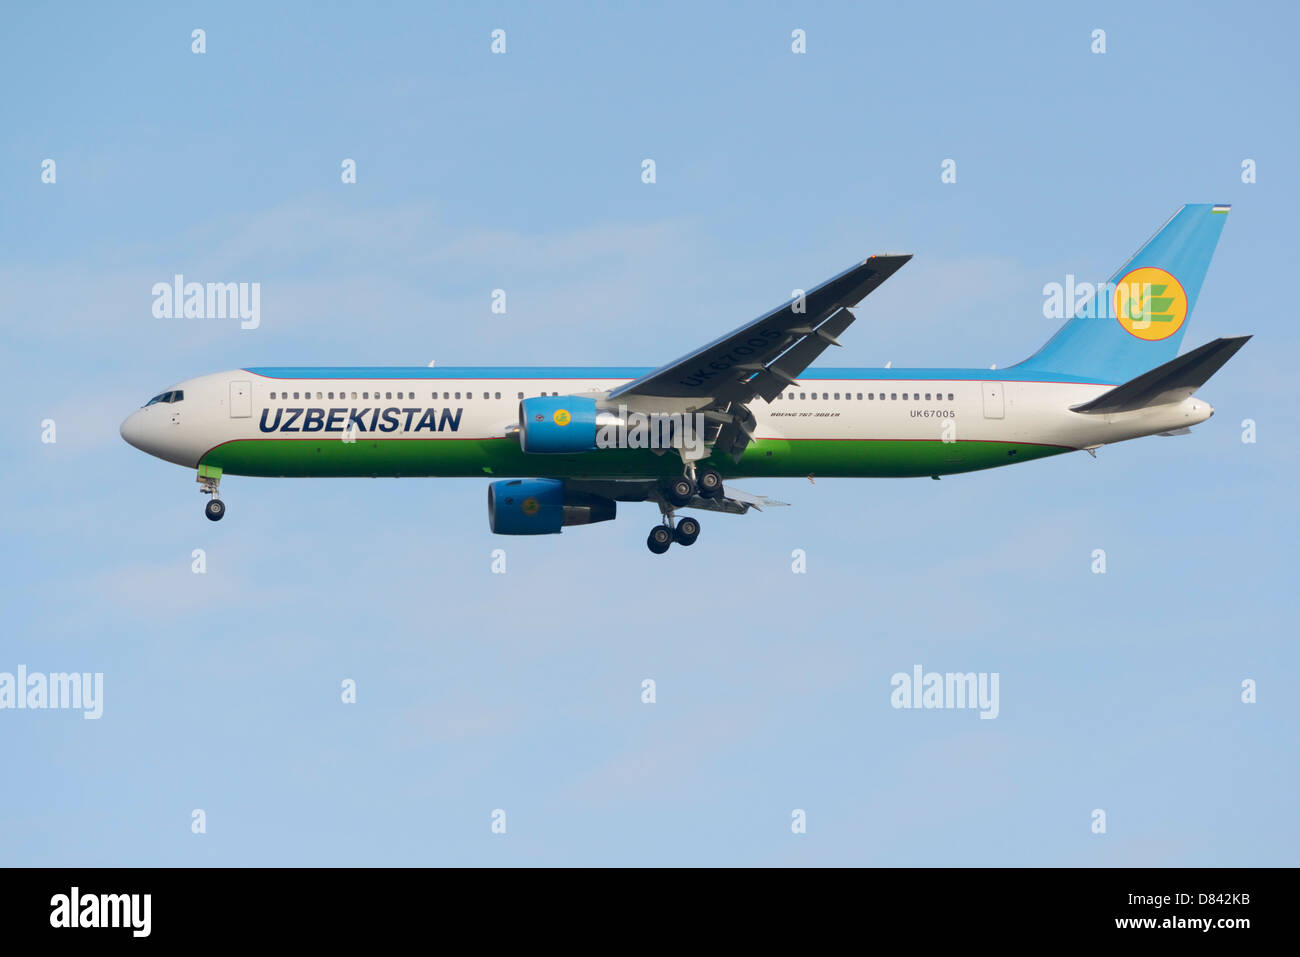 Uzbekistan Airways new Boeing 767-300 on final approach after being flown from manufacture - Stock Image